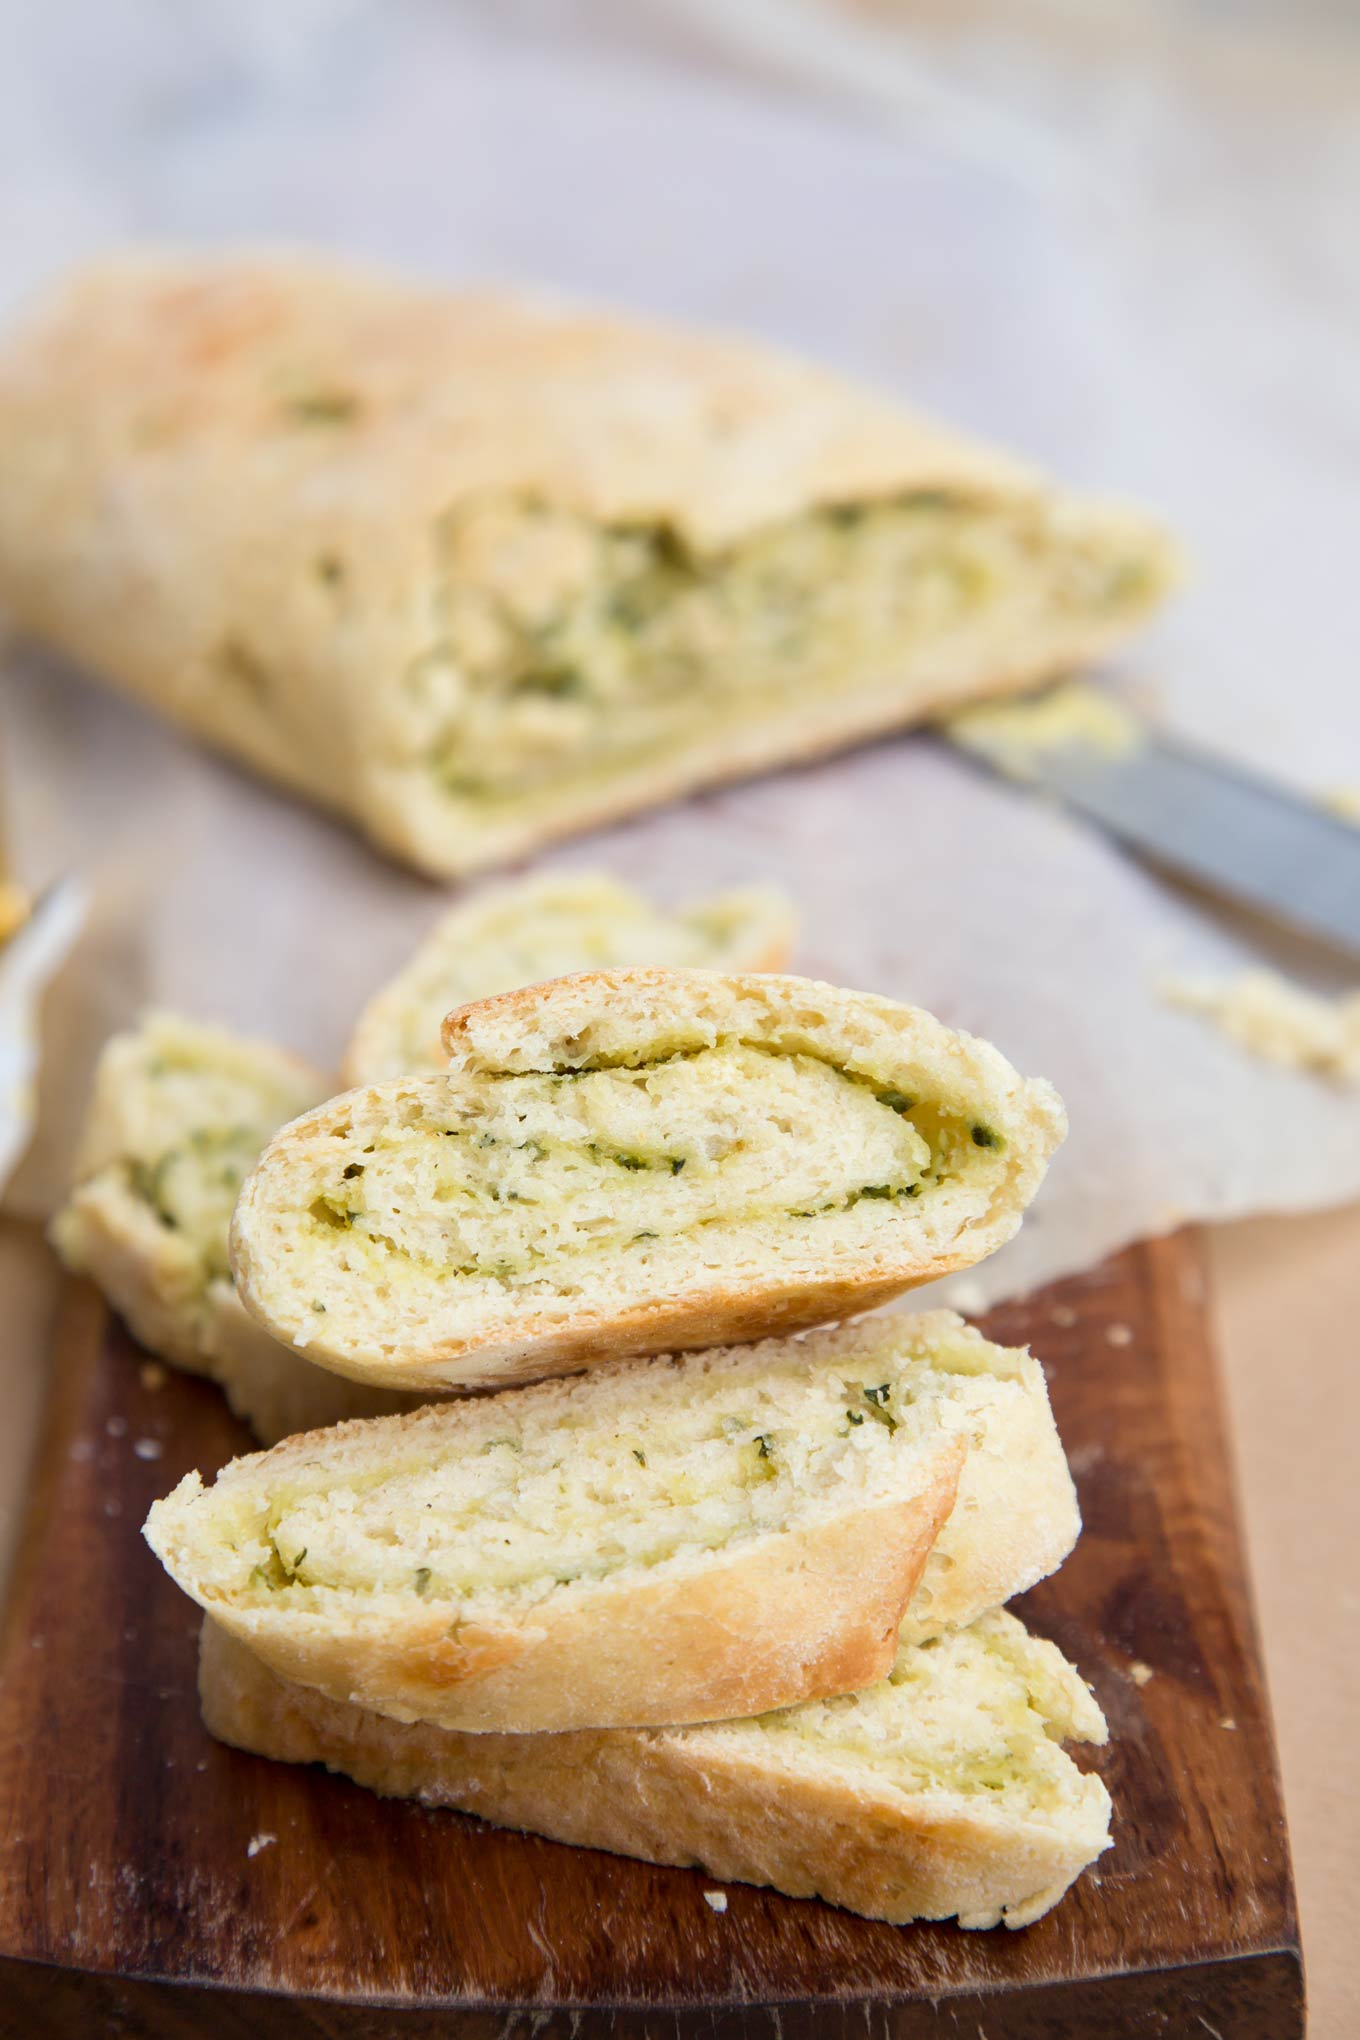 Delicious Roasted Garlic Bread Roulade recipe is a perfect weekend bake. Lovely, flavoursome appetizer or base for canapés.